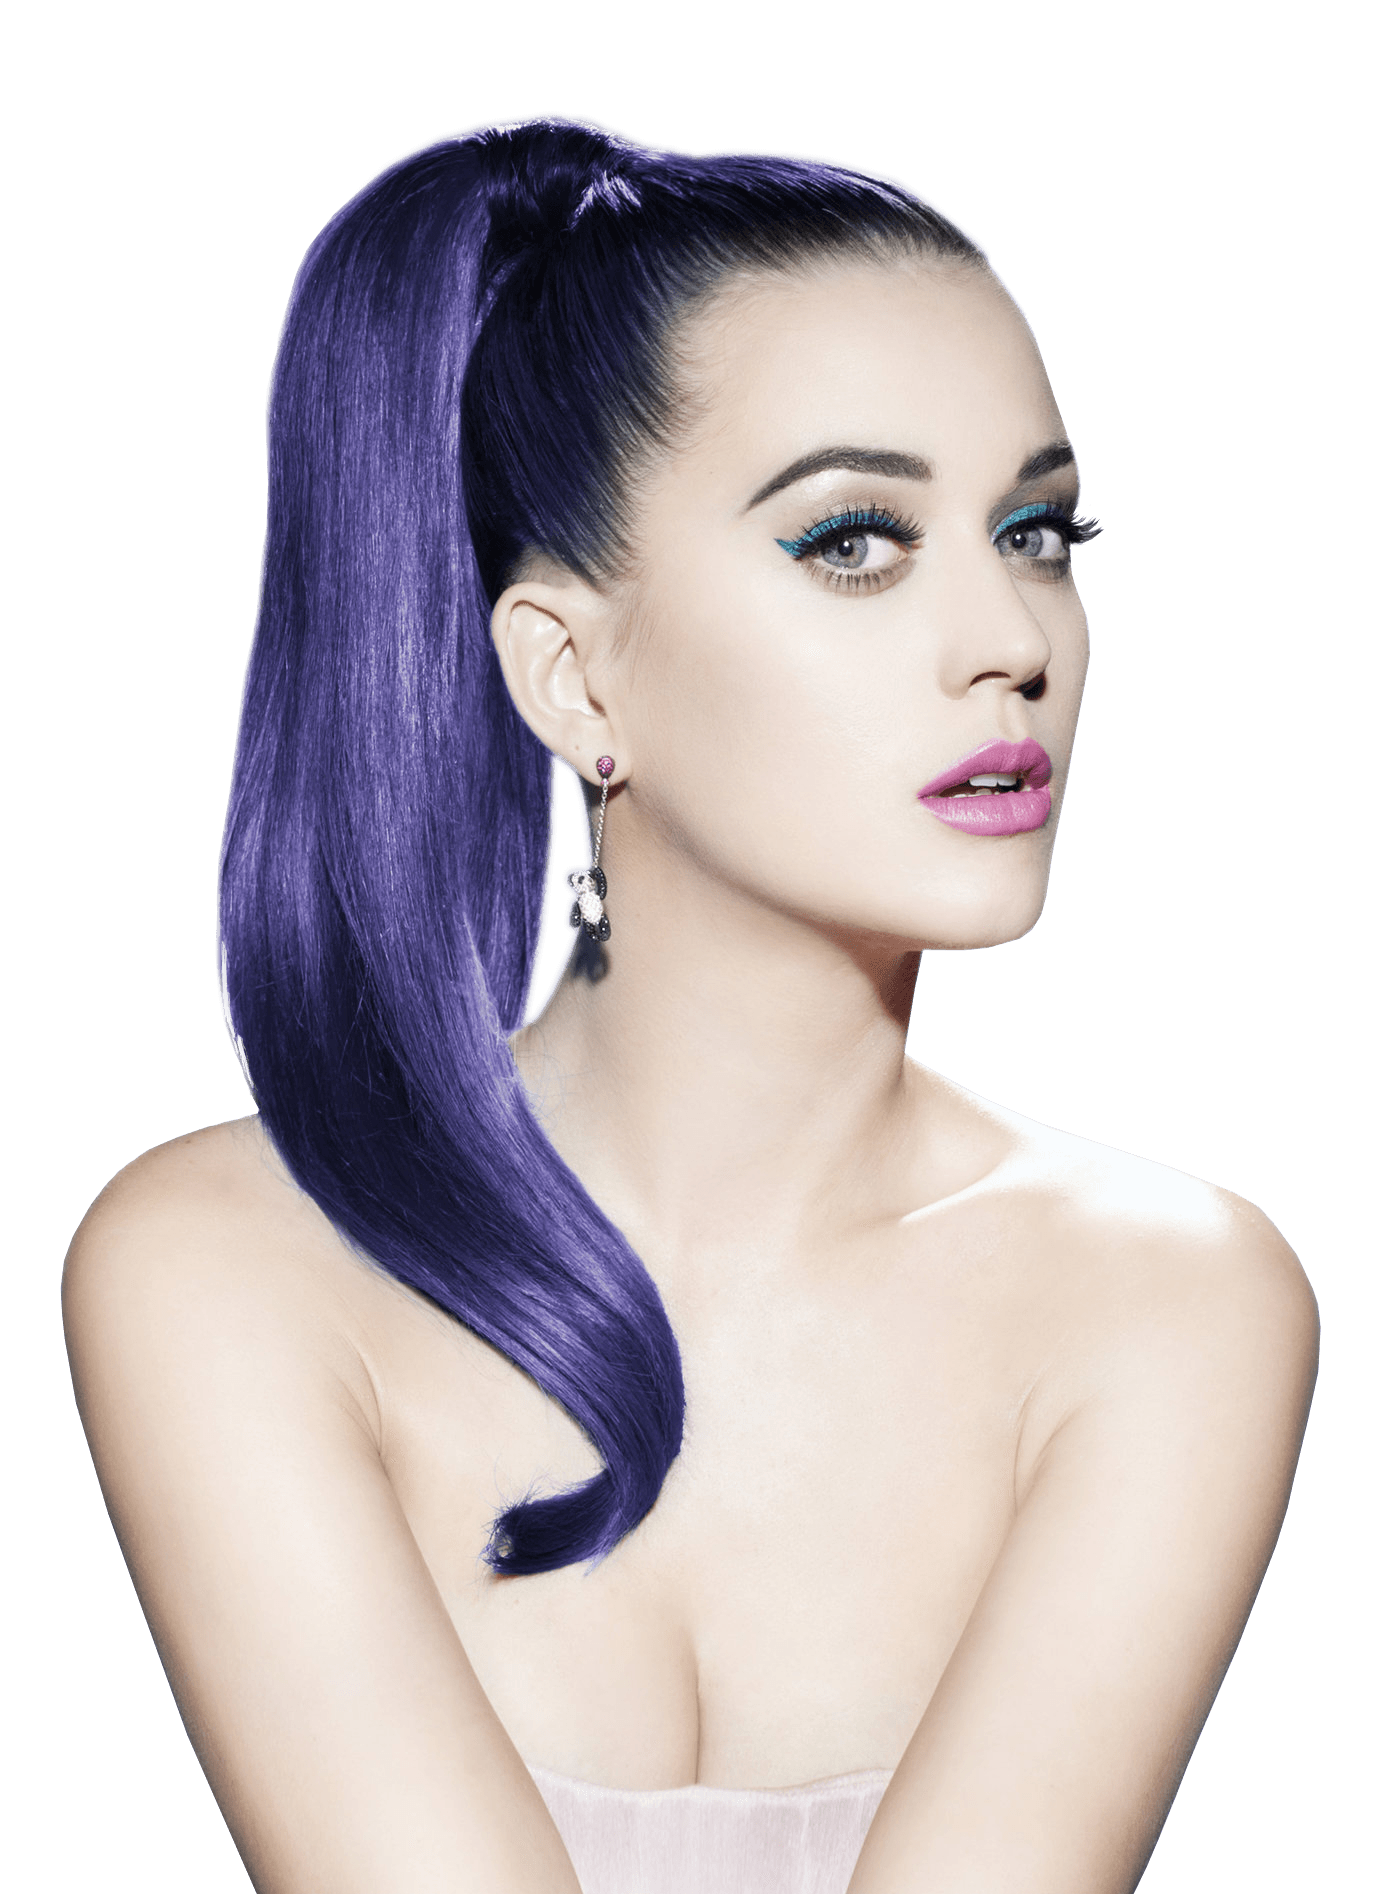 Download · Music Stars · Katy Perry-Download · music stars · katy perry-4